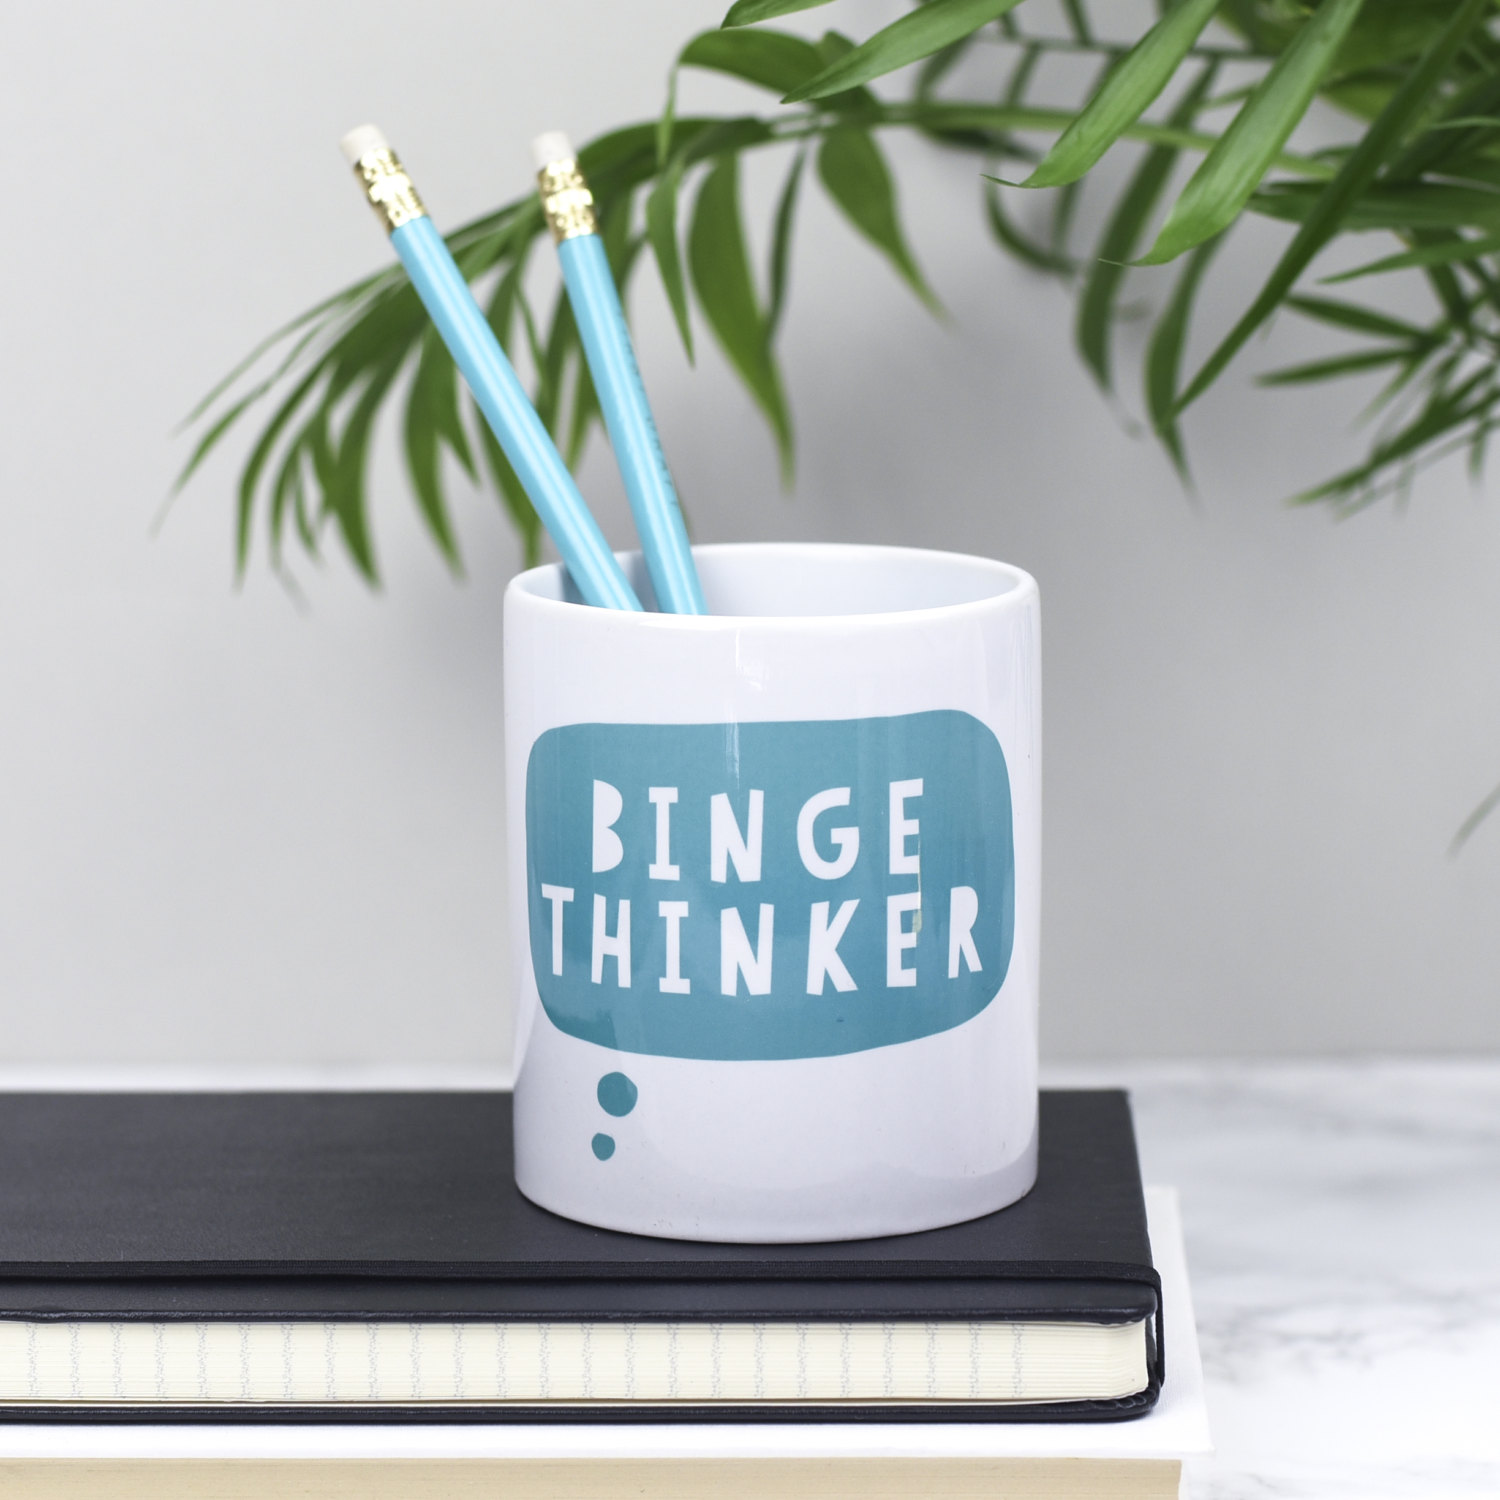 Binge Thinker pencil pot